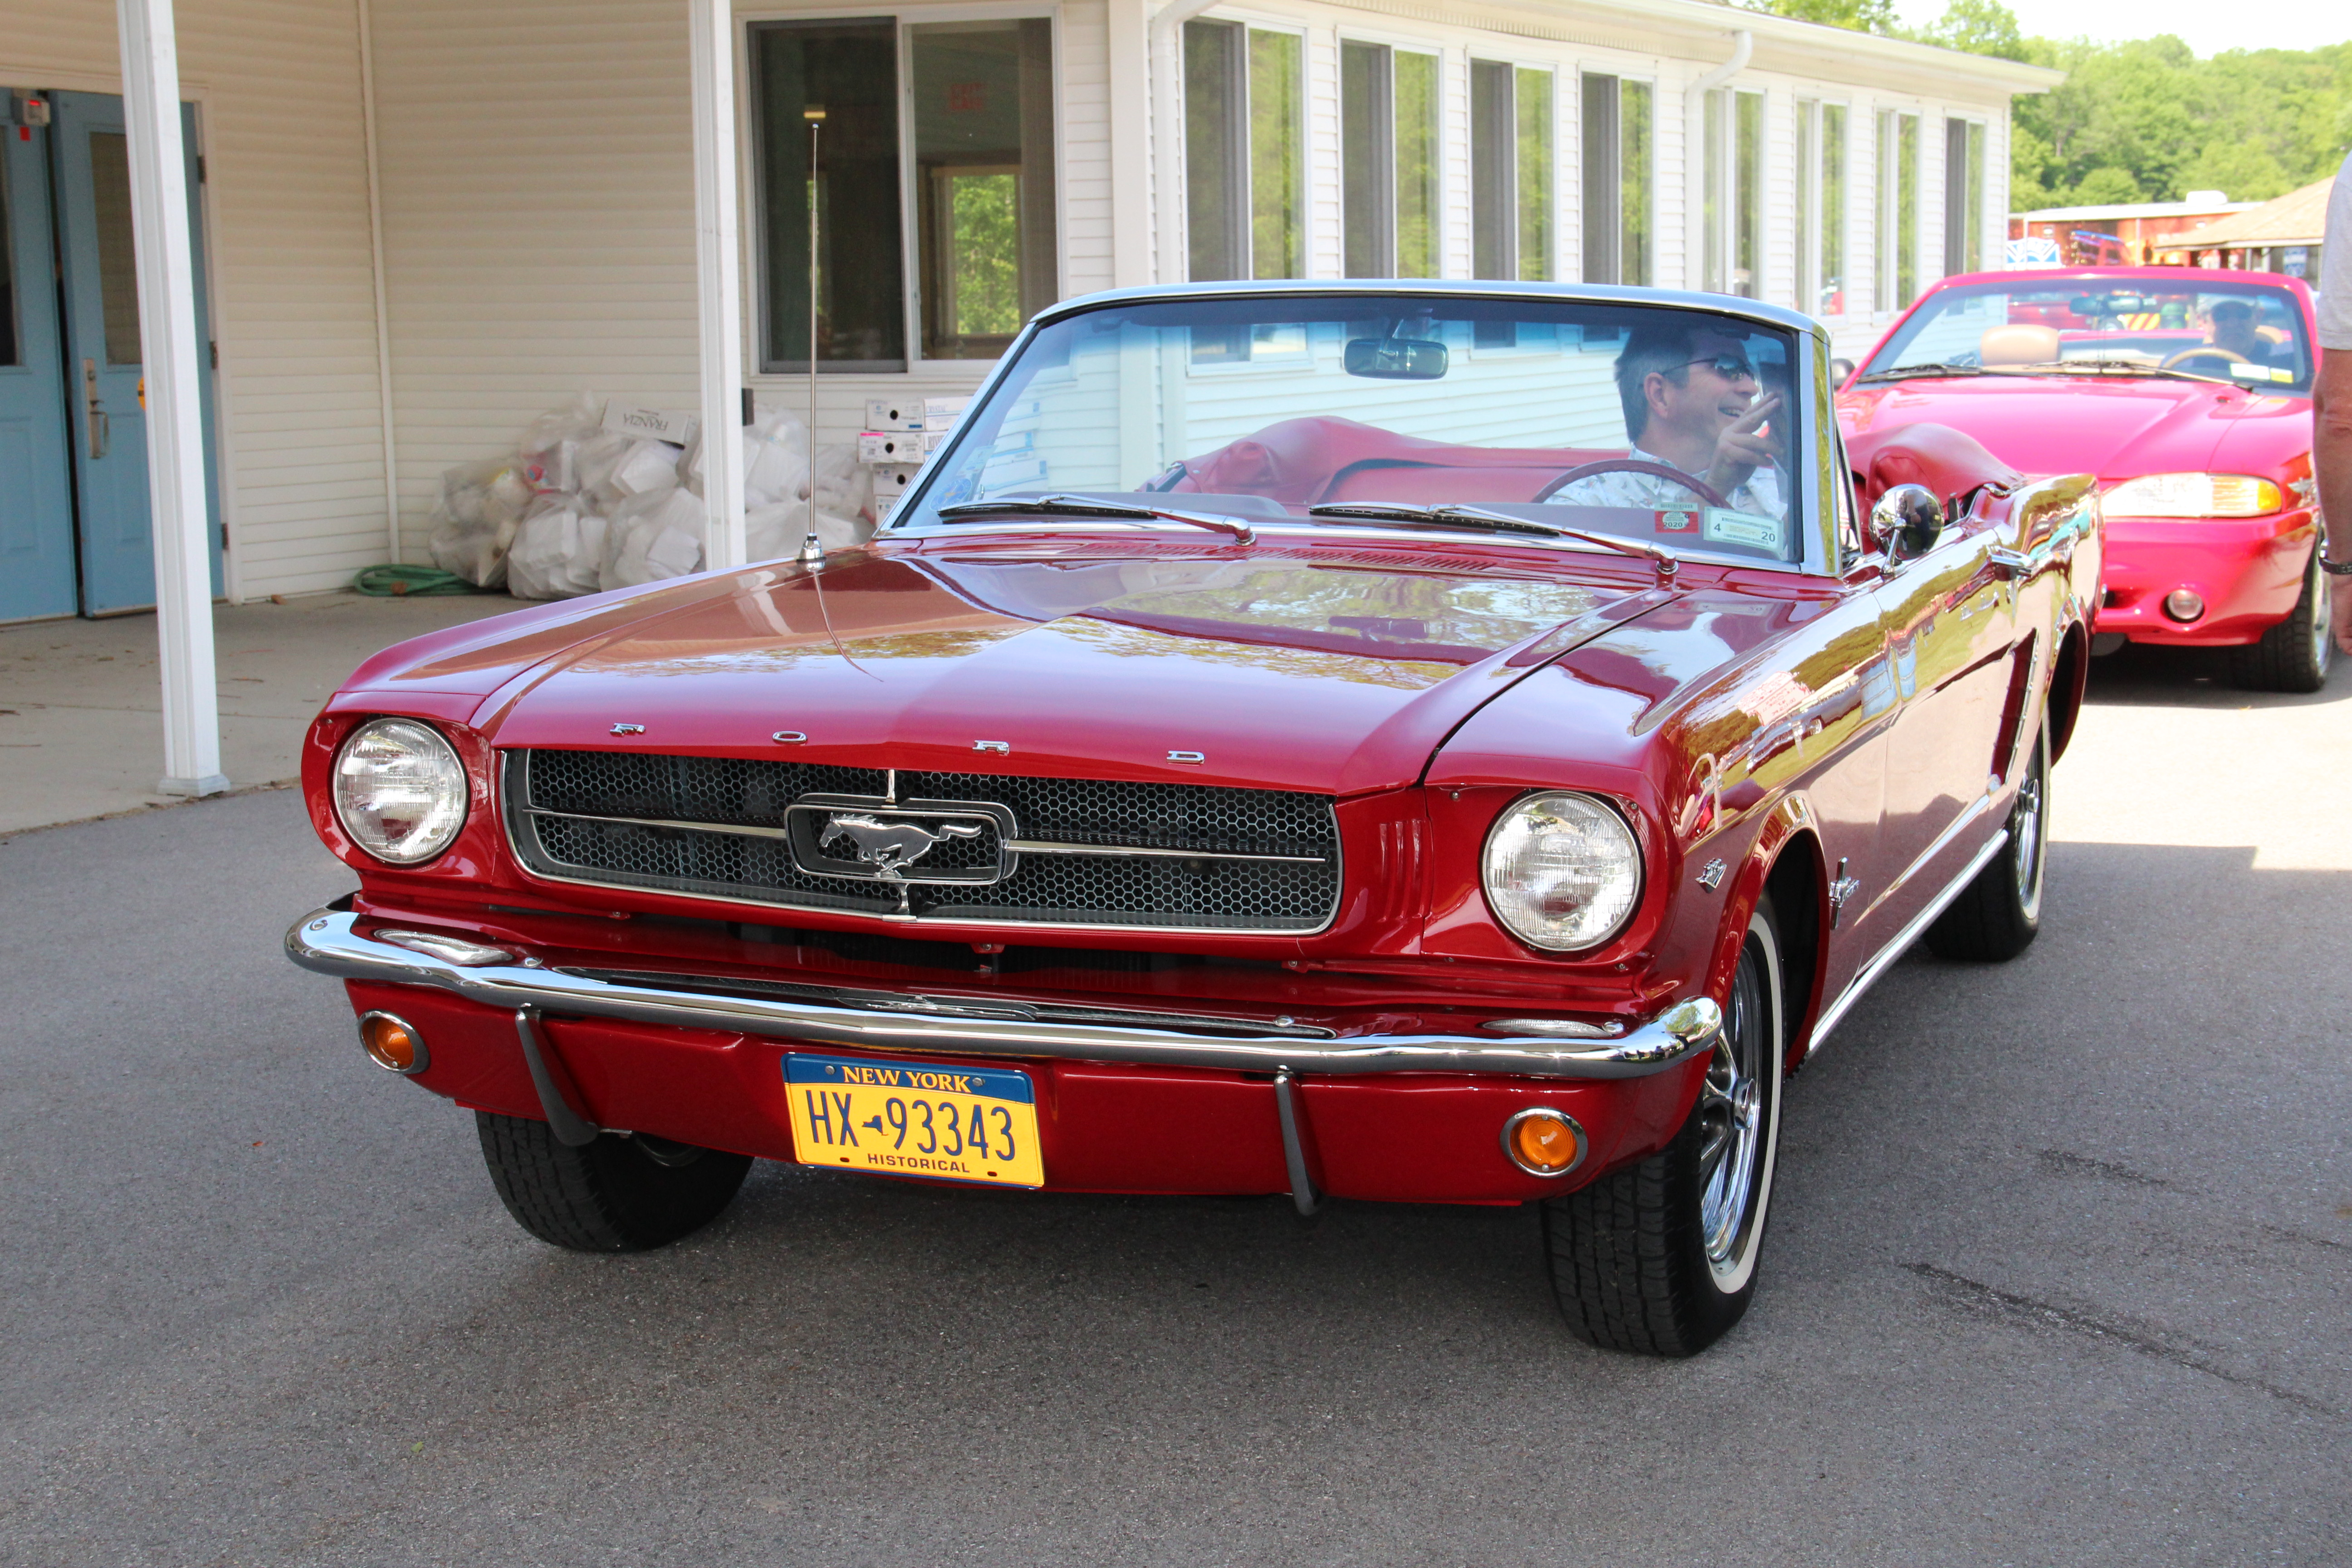 IMG_0759-Class-16-1st-Paul-Lilly-Stockdill-1964.5-Ford-Mustang